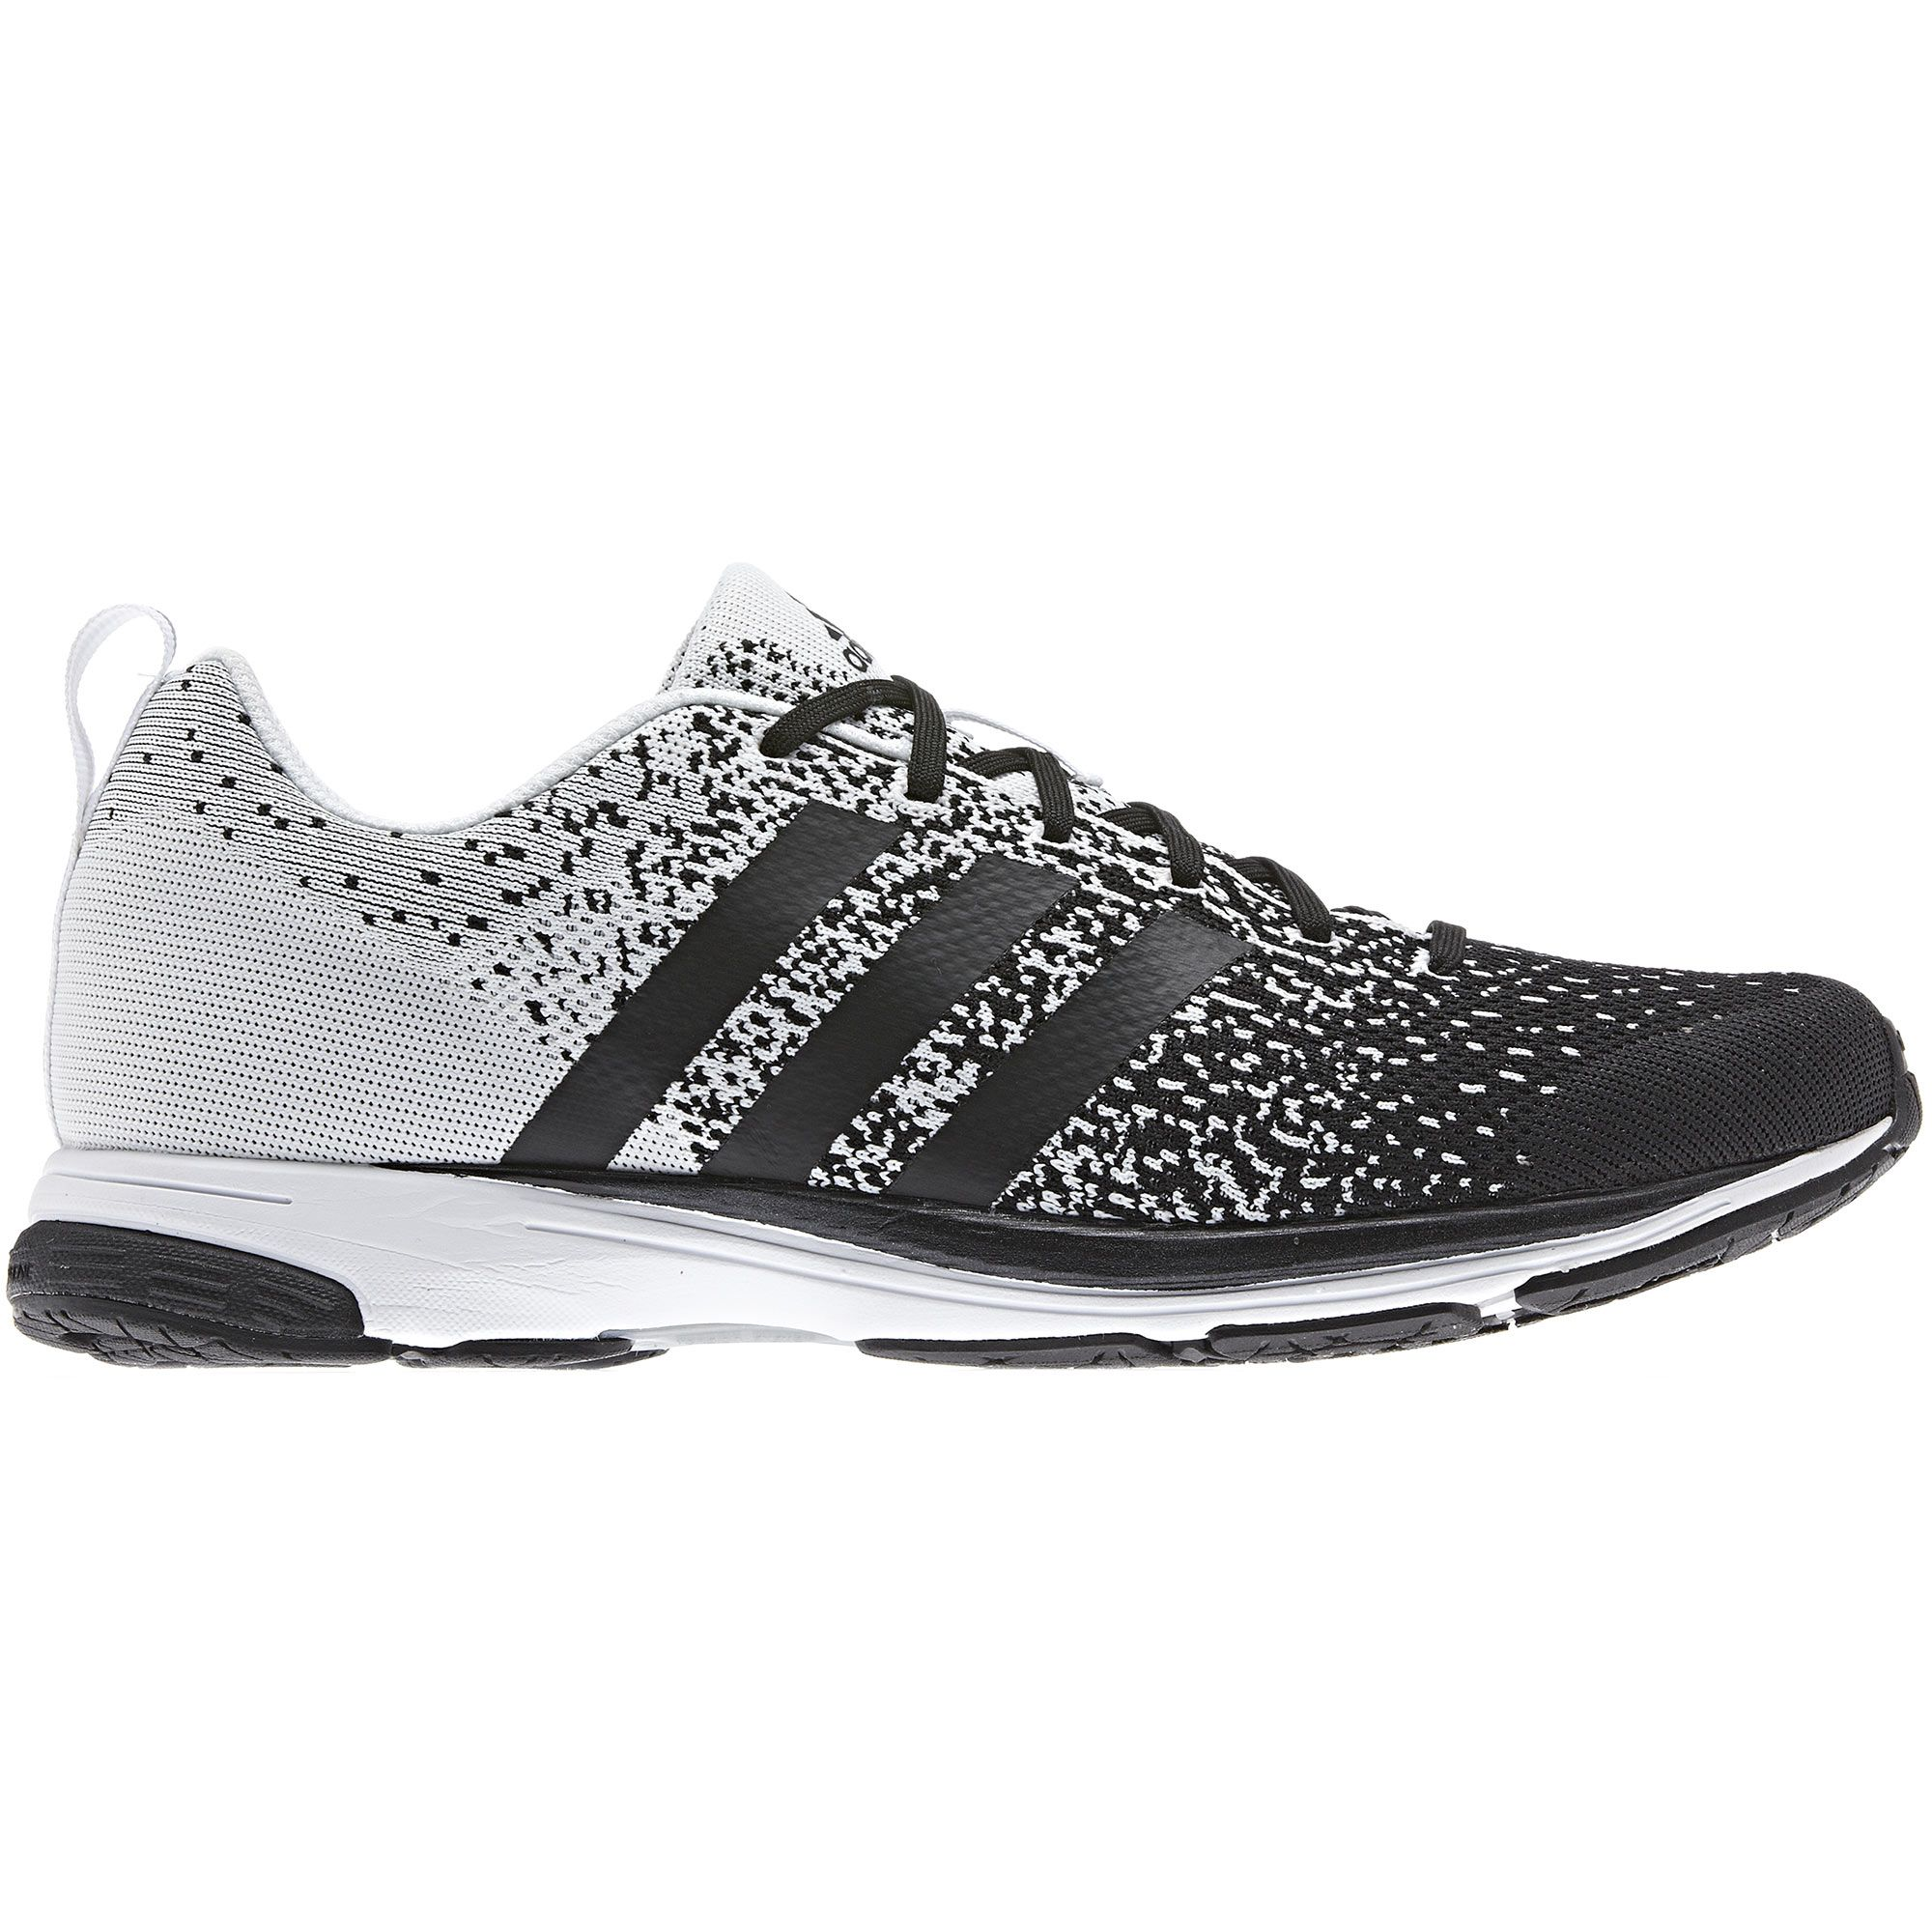 reputable site 12429 c8c4b undefined Adidas Hommes, Shoes Too Big, Adidas Sneakers, Sport Wear, Casual  Shoes